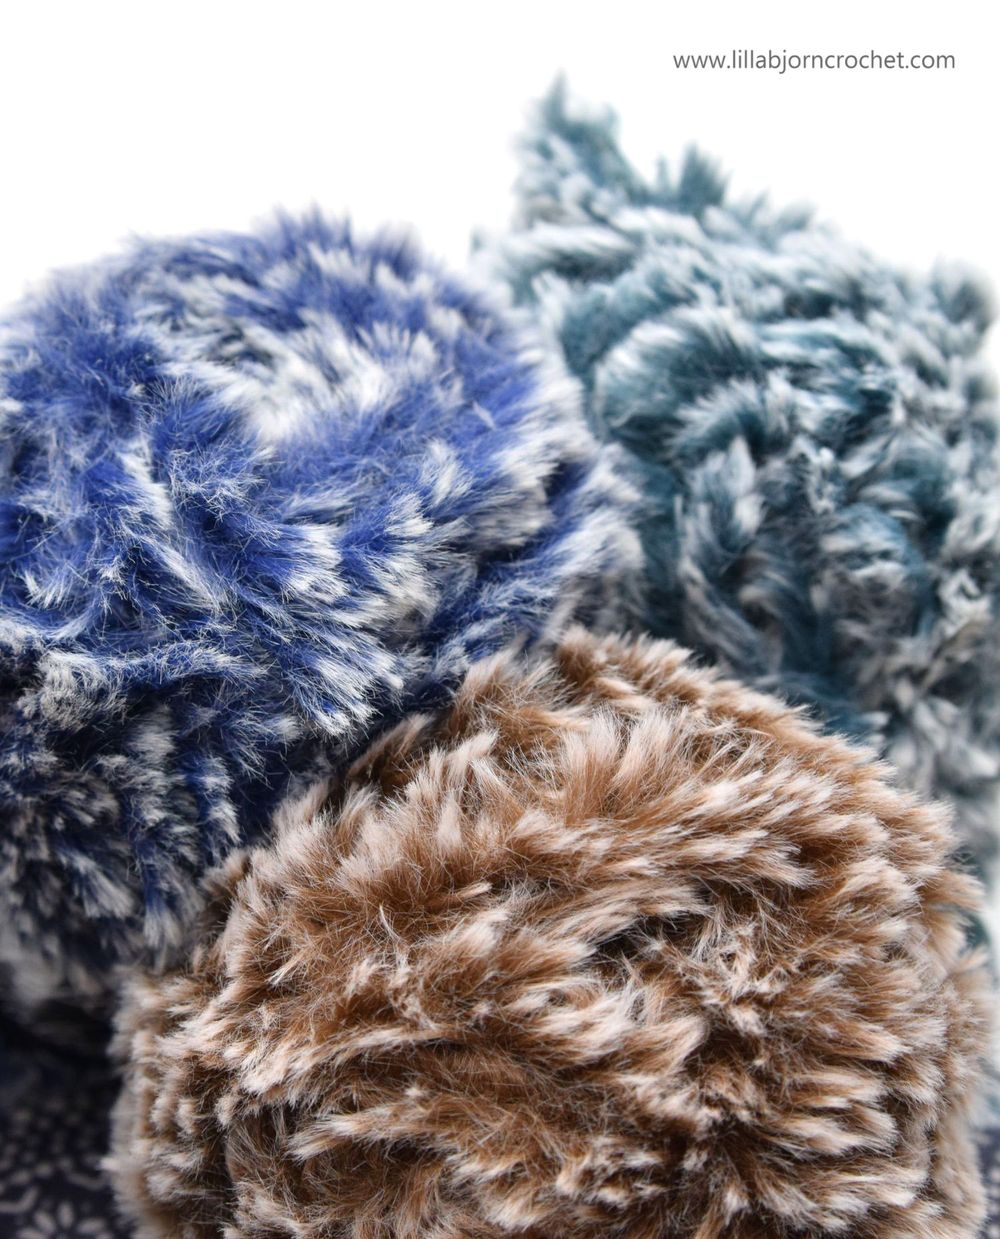 brand new faux fur yarn